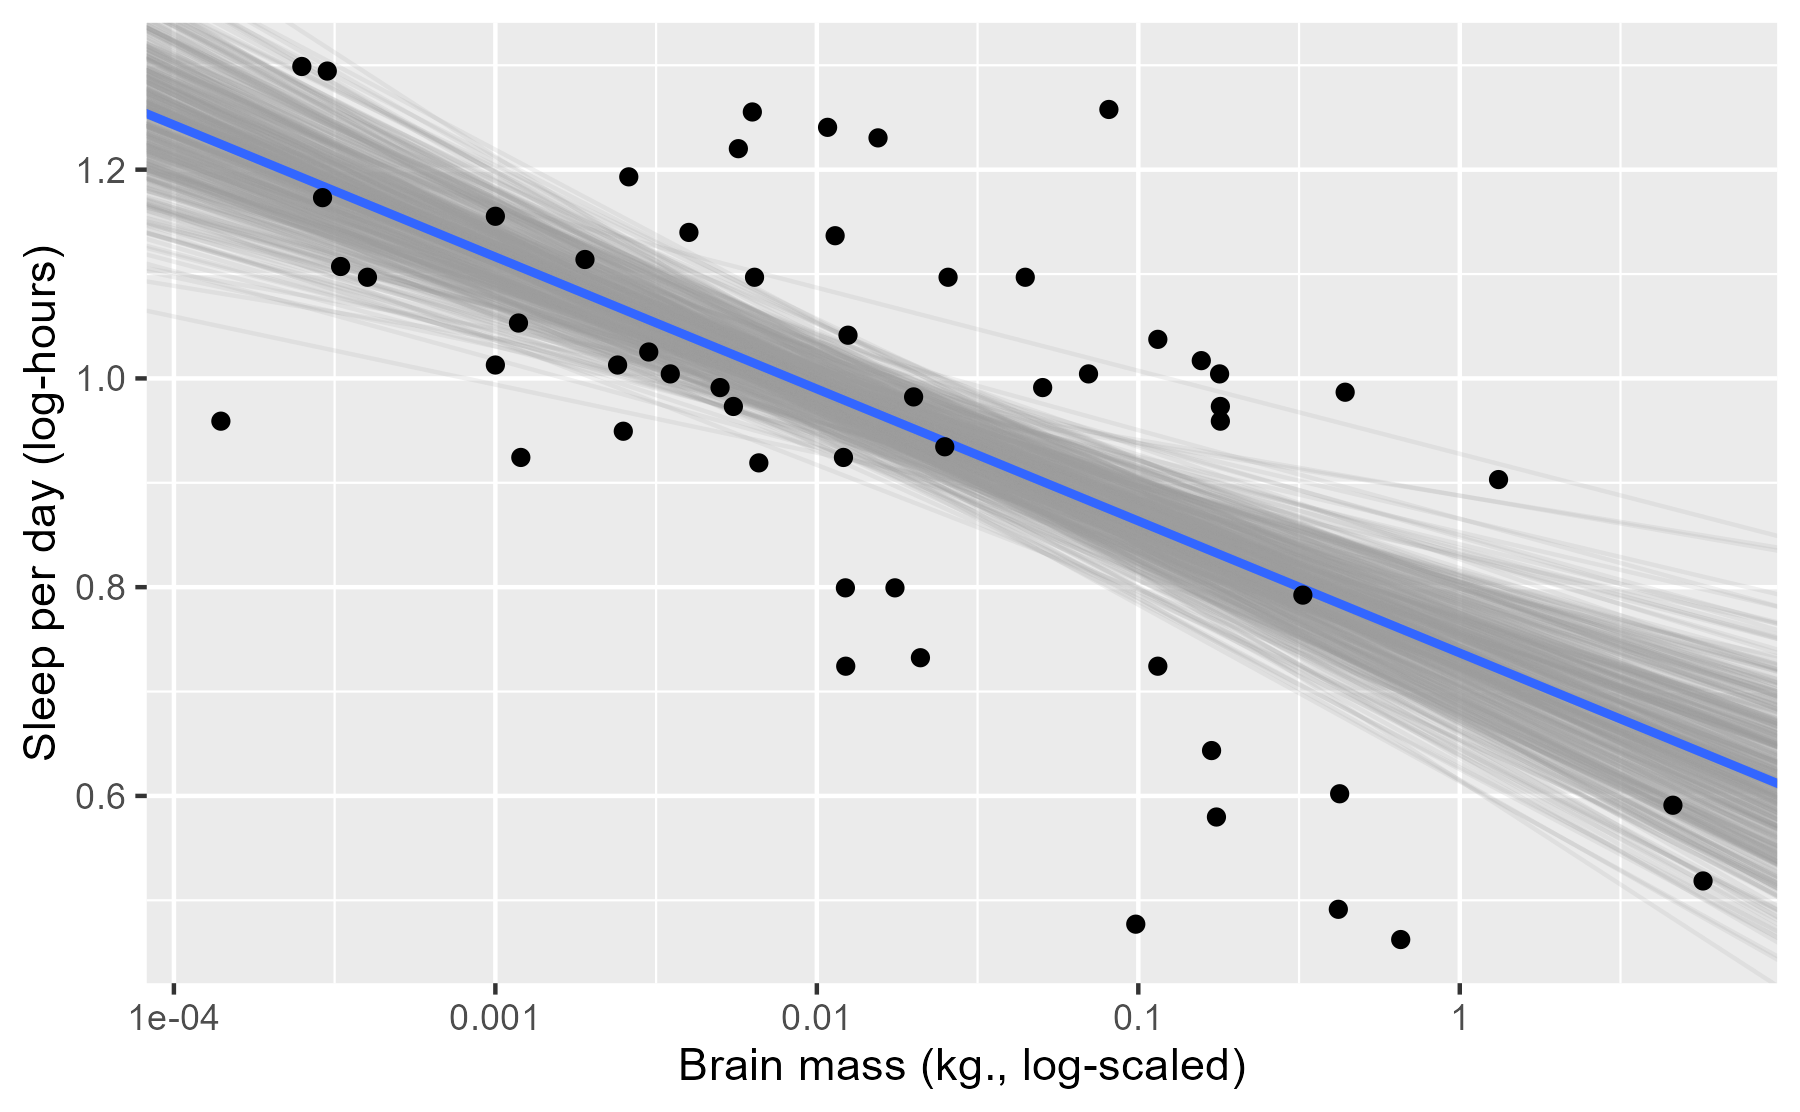 Brain mass by sleep hours, log-10 scale, plus the median regression line and 500 random regressions lines sampled from the posterior.